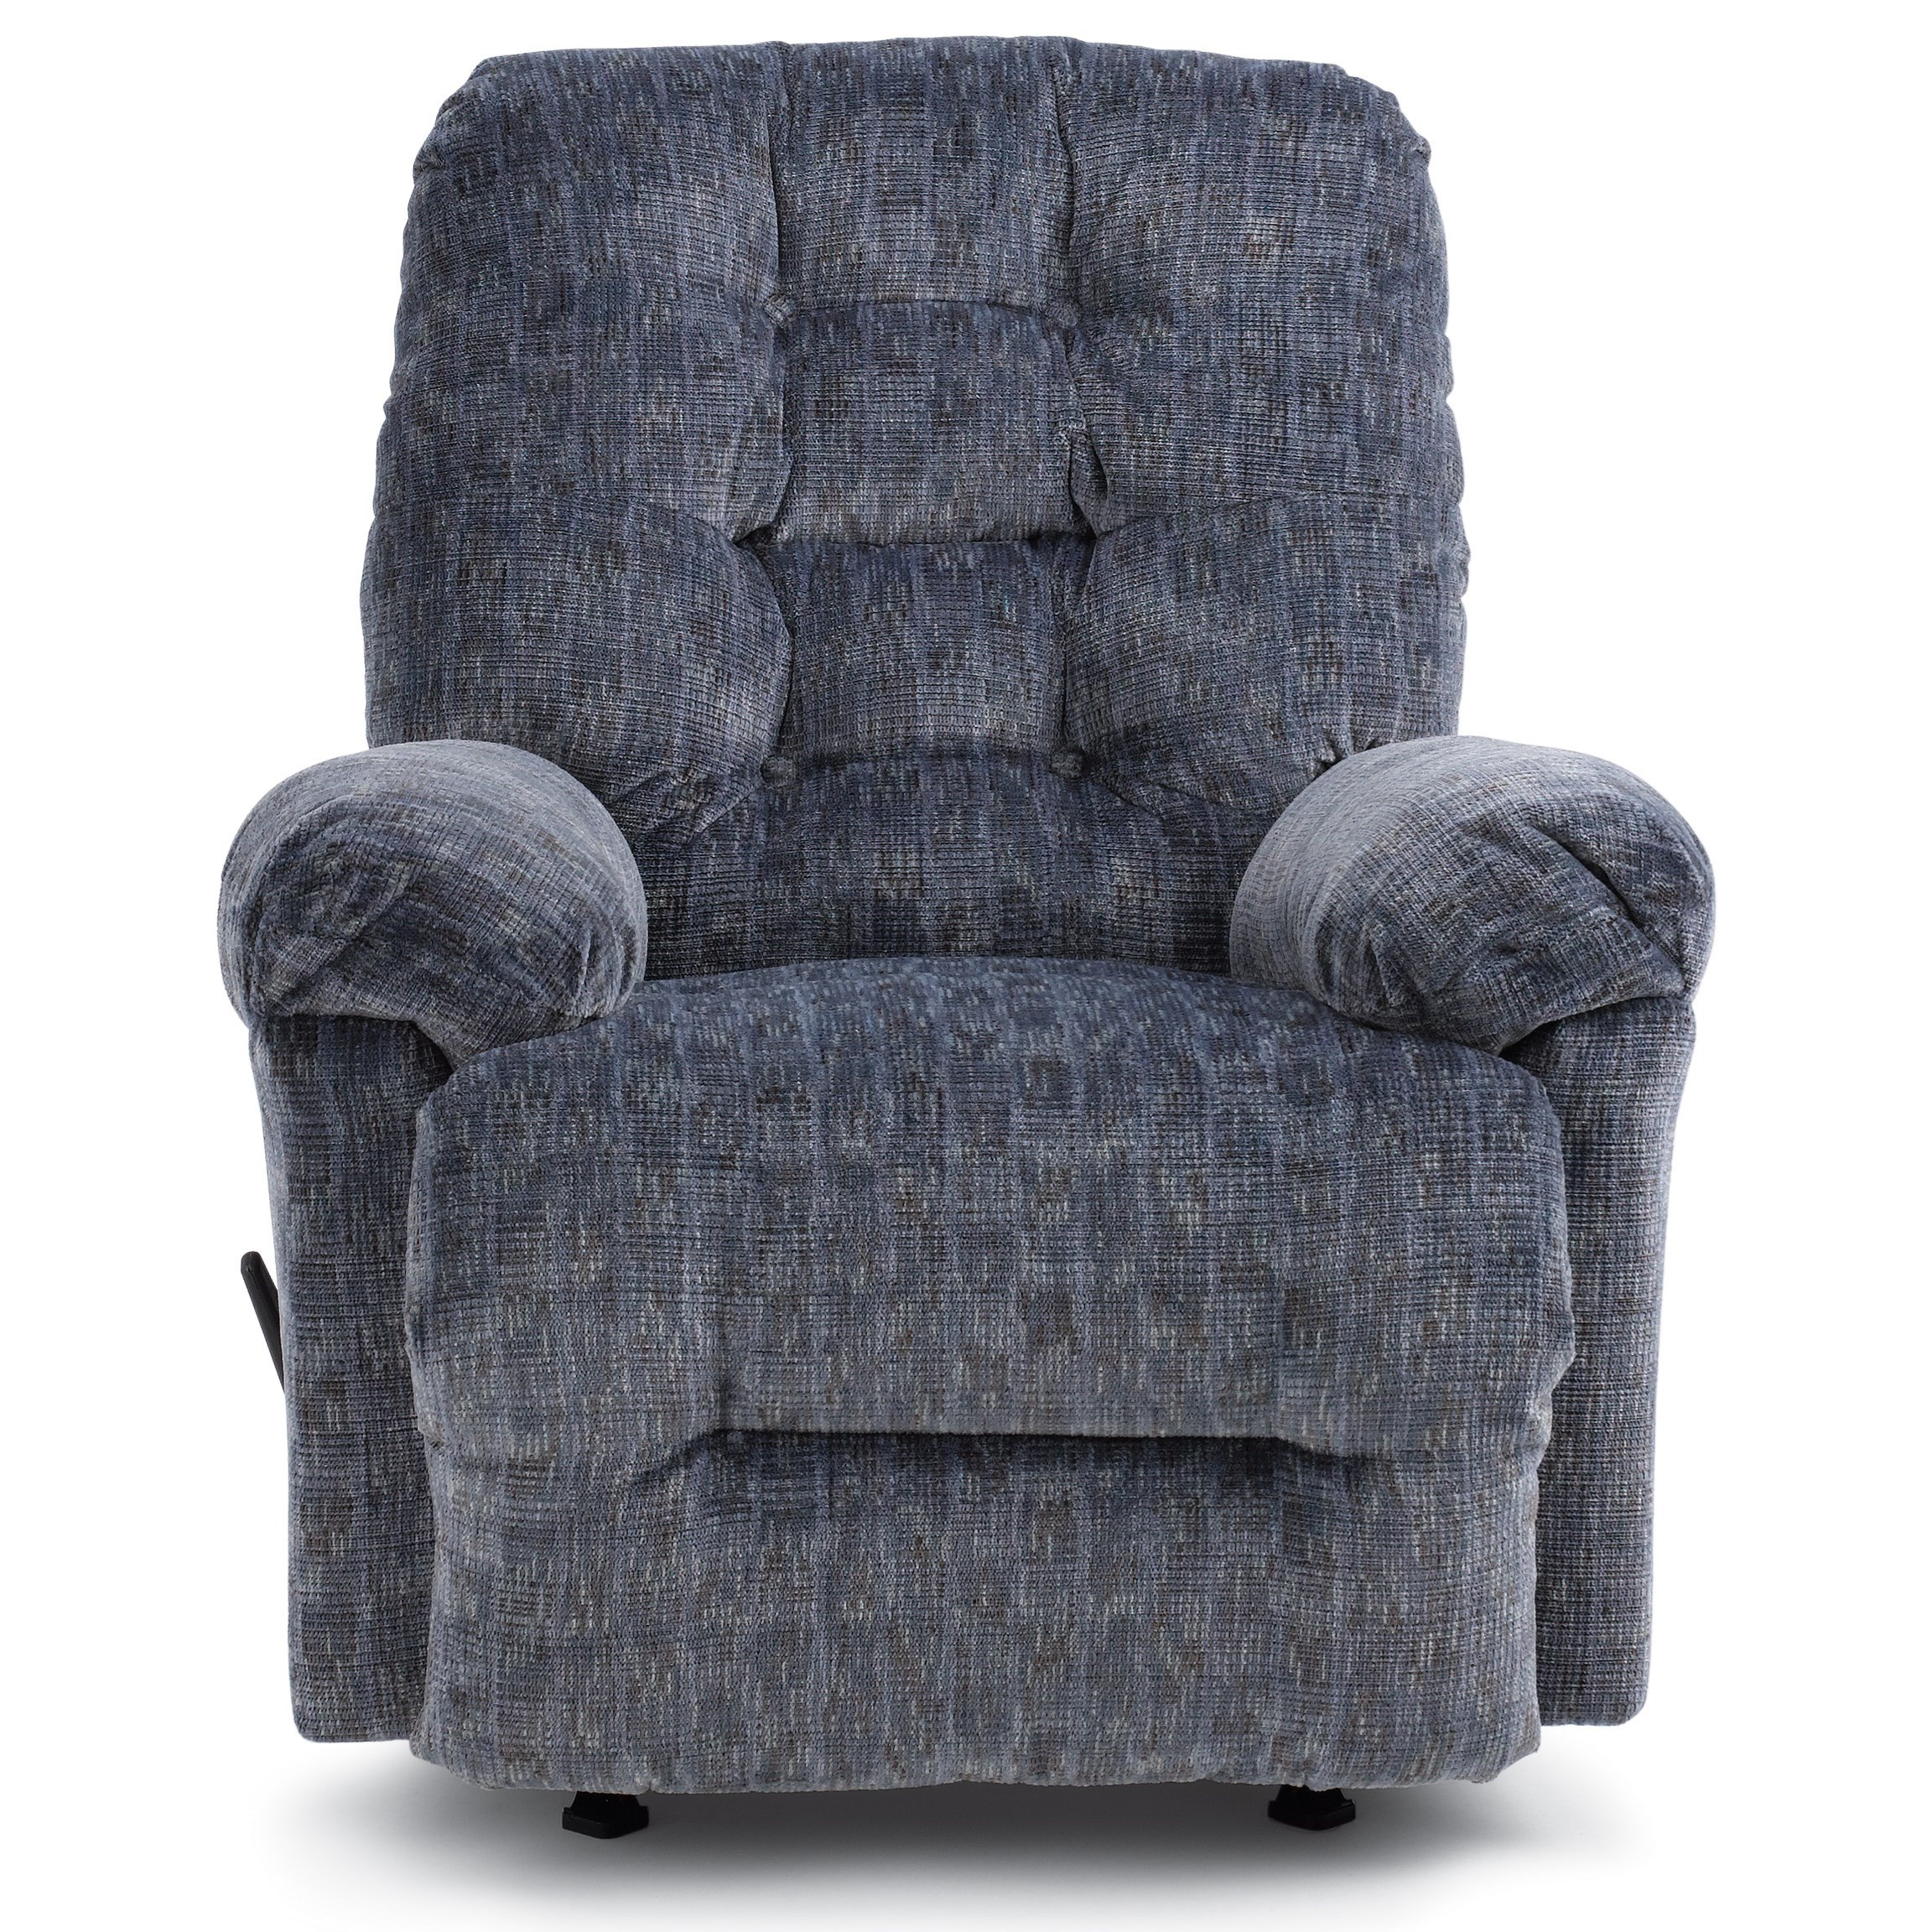 BOGO Recliners Conway Power Rocker Recliner by Best Home Furnishings at Lucas Furniture & Mattress